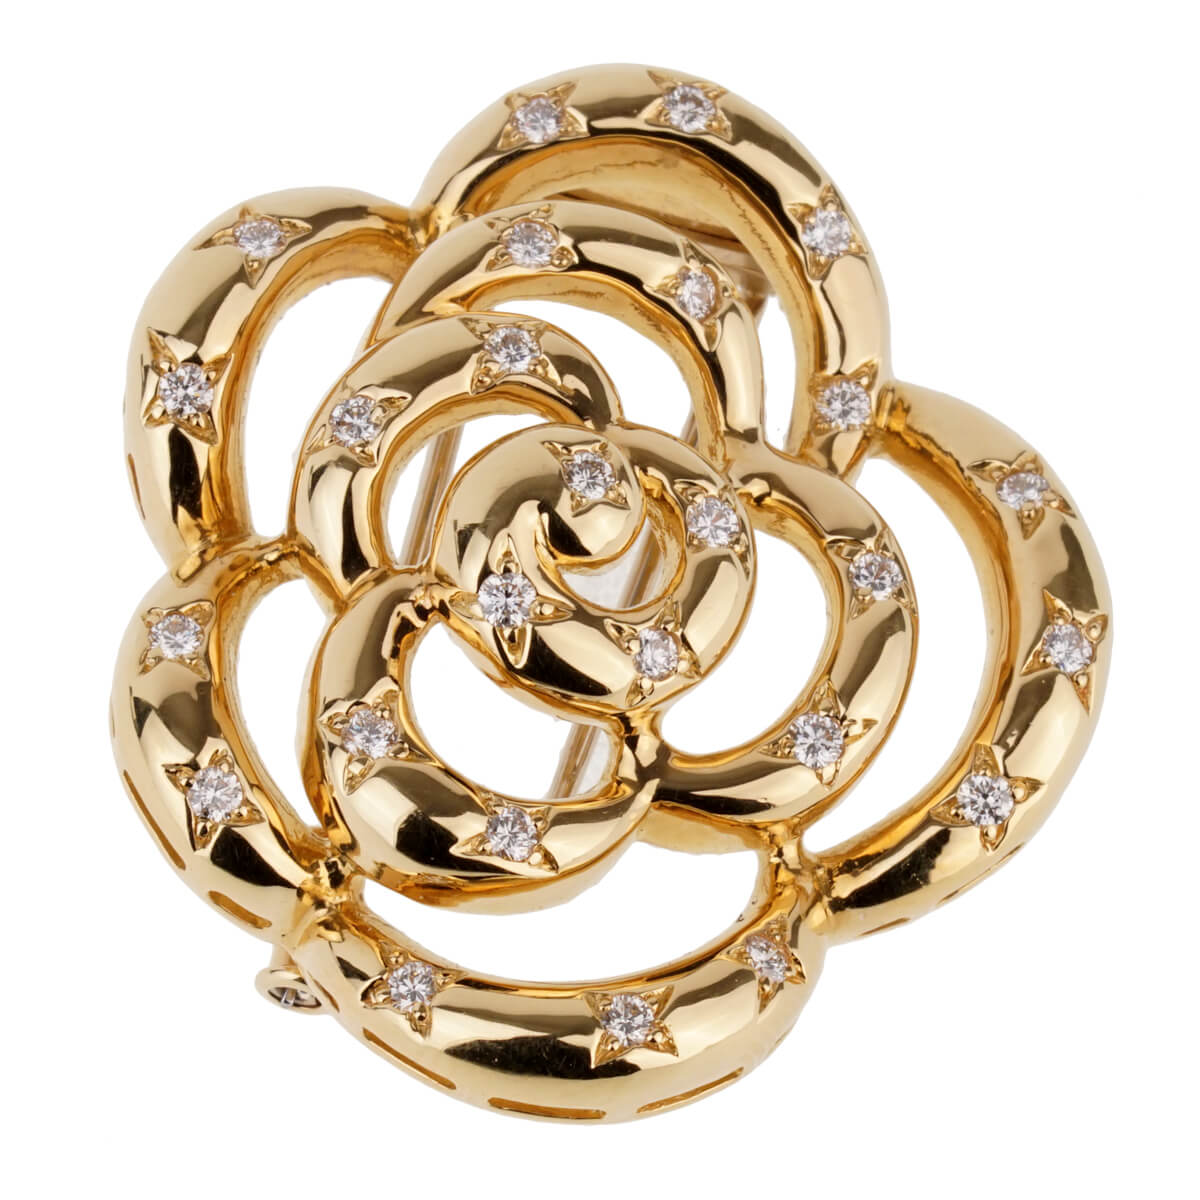 Van Cleef Arpels Flower Diamond Gold Brooch